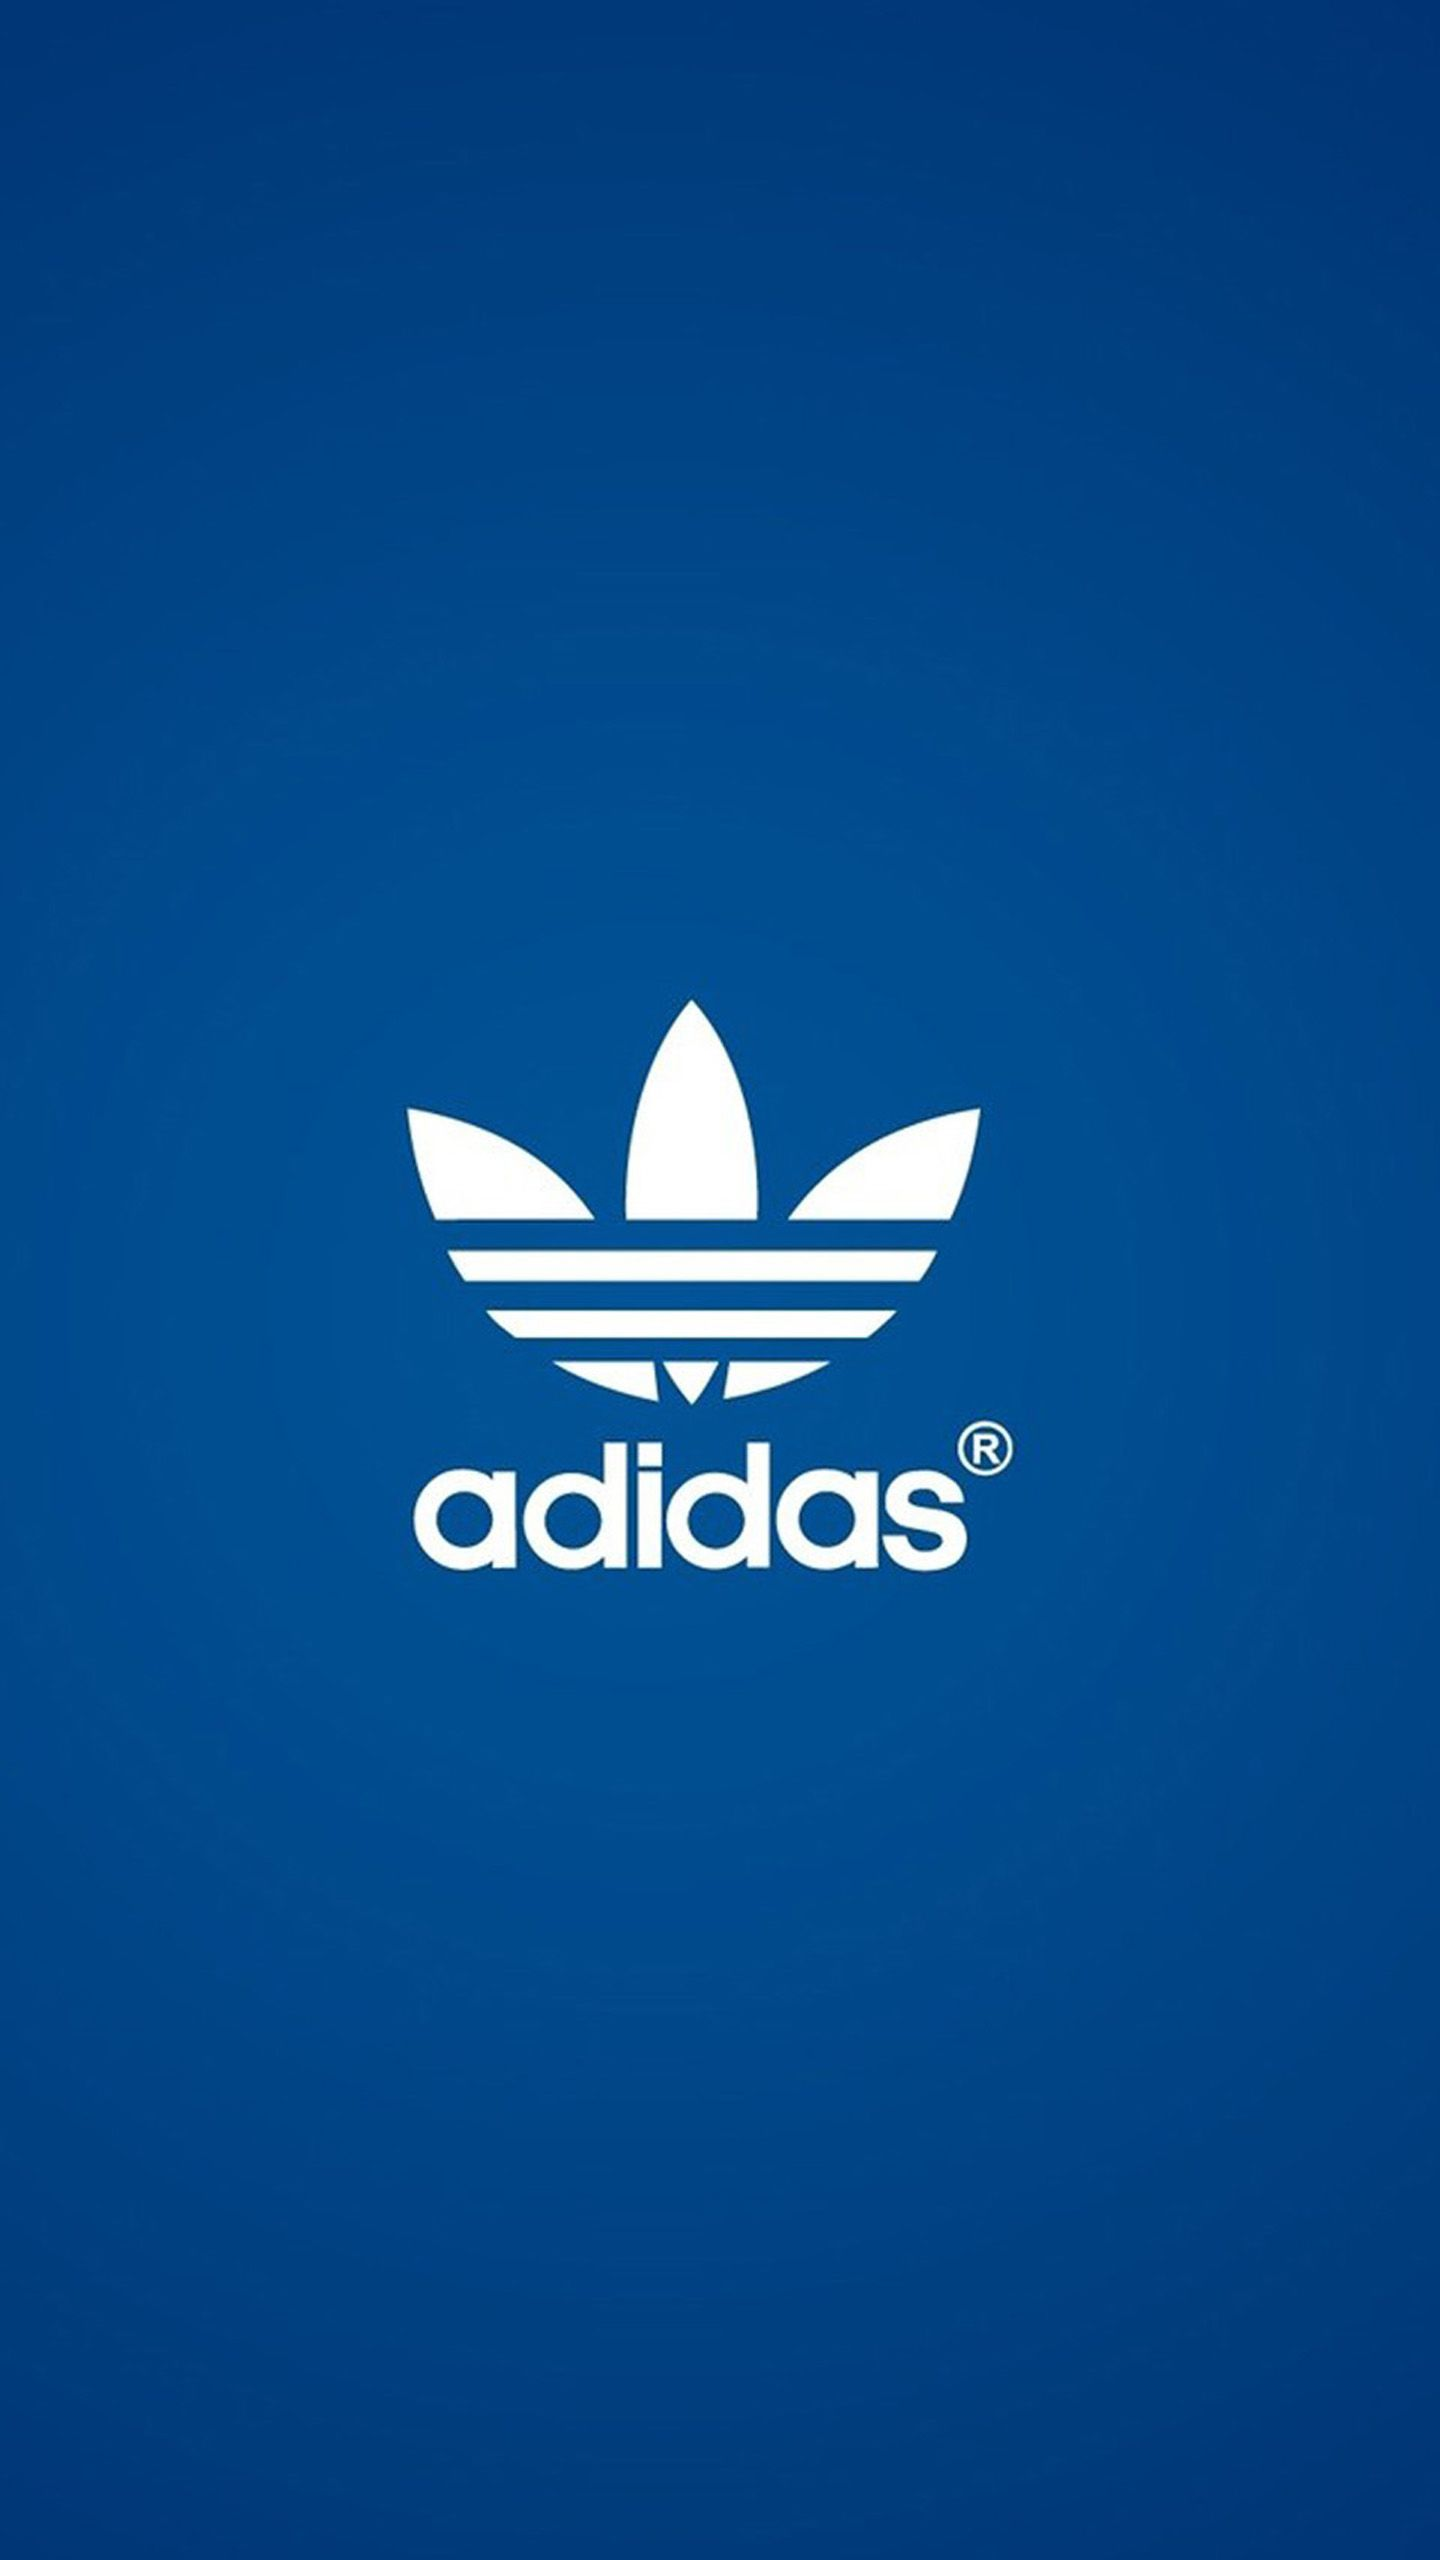 Adidas Samsung Galaxy S8 Wallpaper 2018 Wallpapers Hd Wallpaper